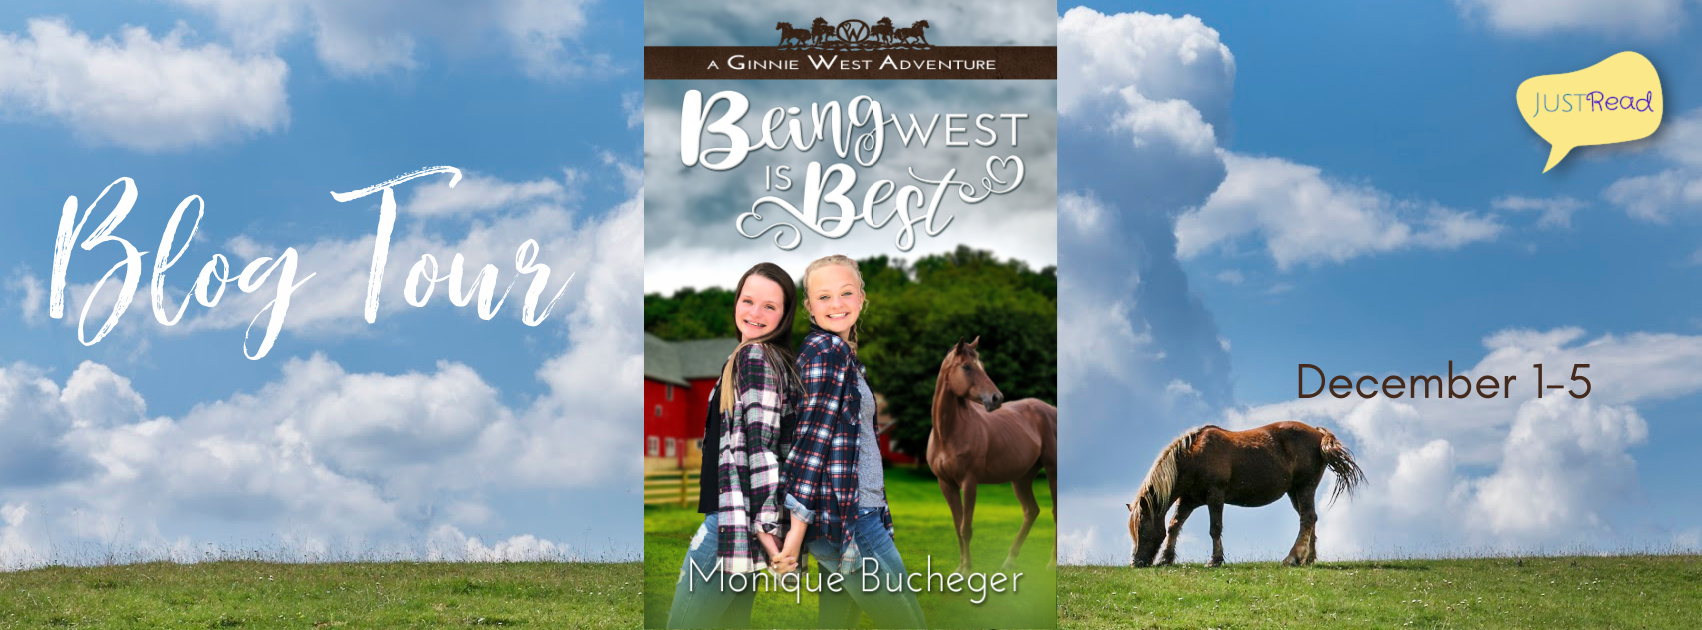 Welcome to the Being West is Best Blog Tour & Giveaway!